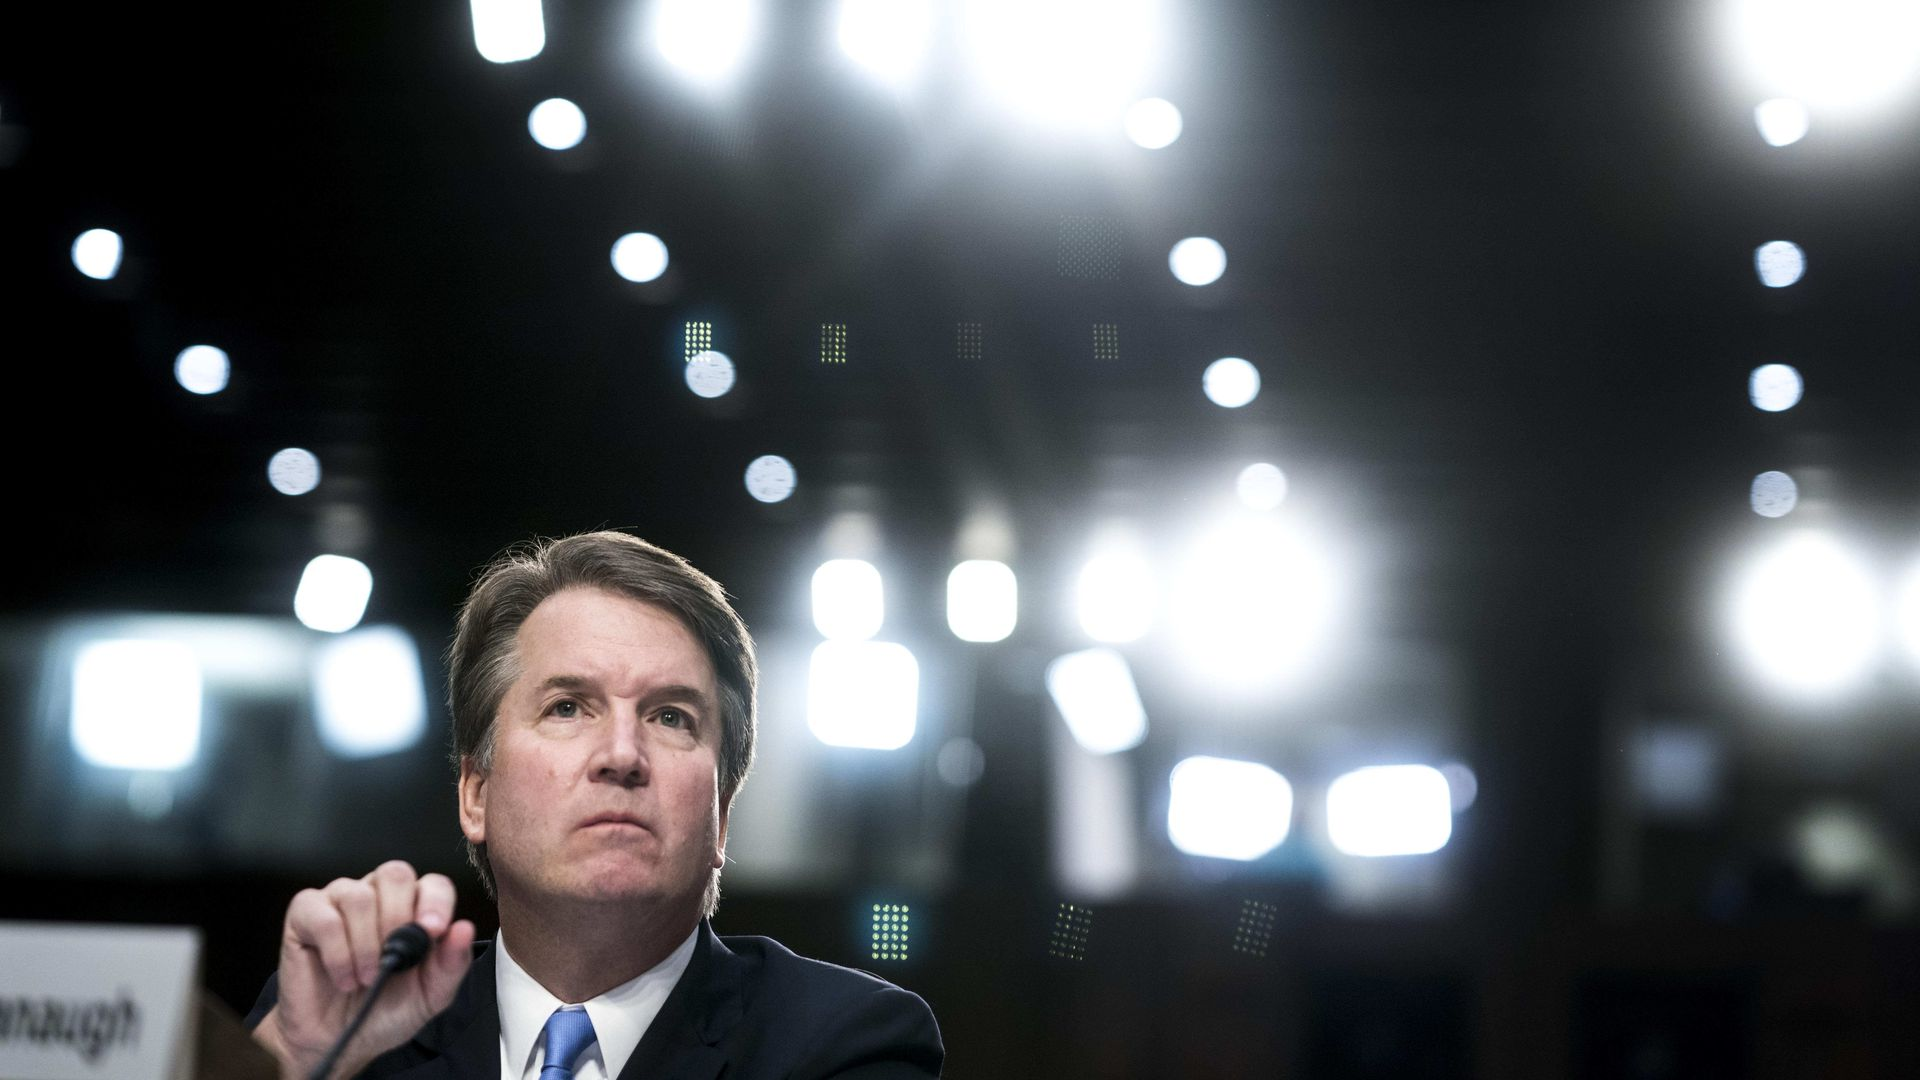 Supreme Court nominee Brett Kavanaugh. Photo: Melina Mara/The Washington Post via Getty Images